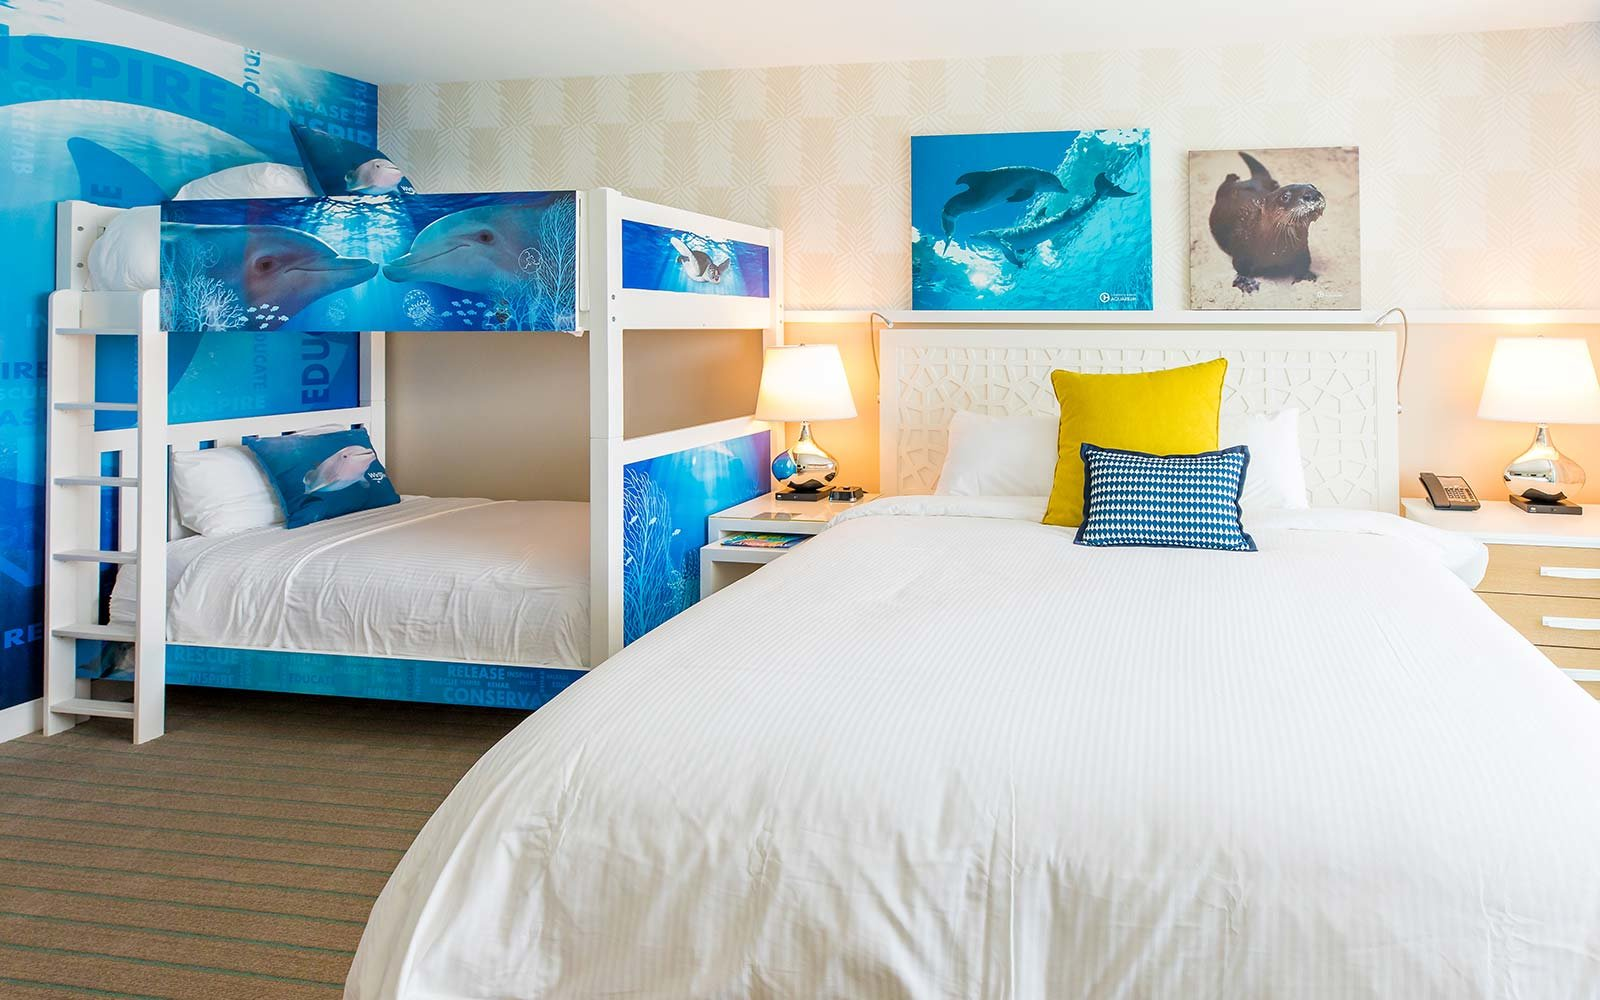 20 Amazing Hotel Rooms Inspired by Your Favorite Film and TV Shows ...